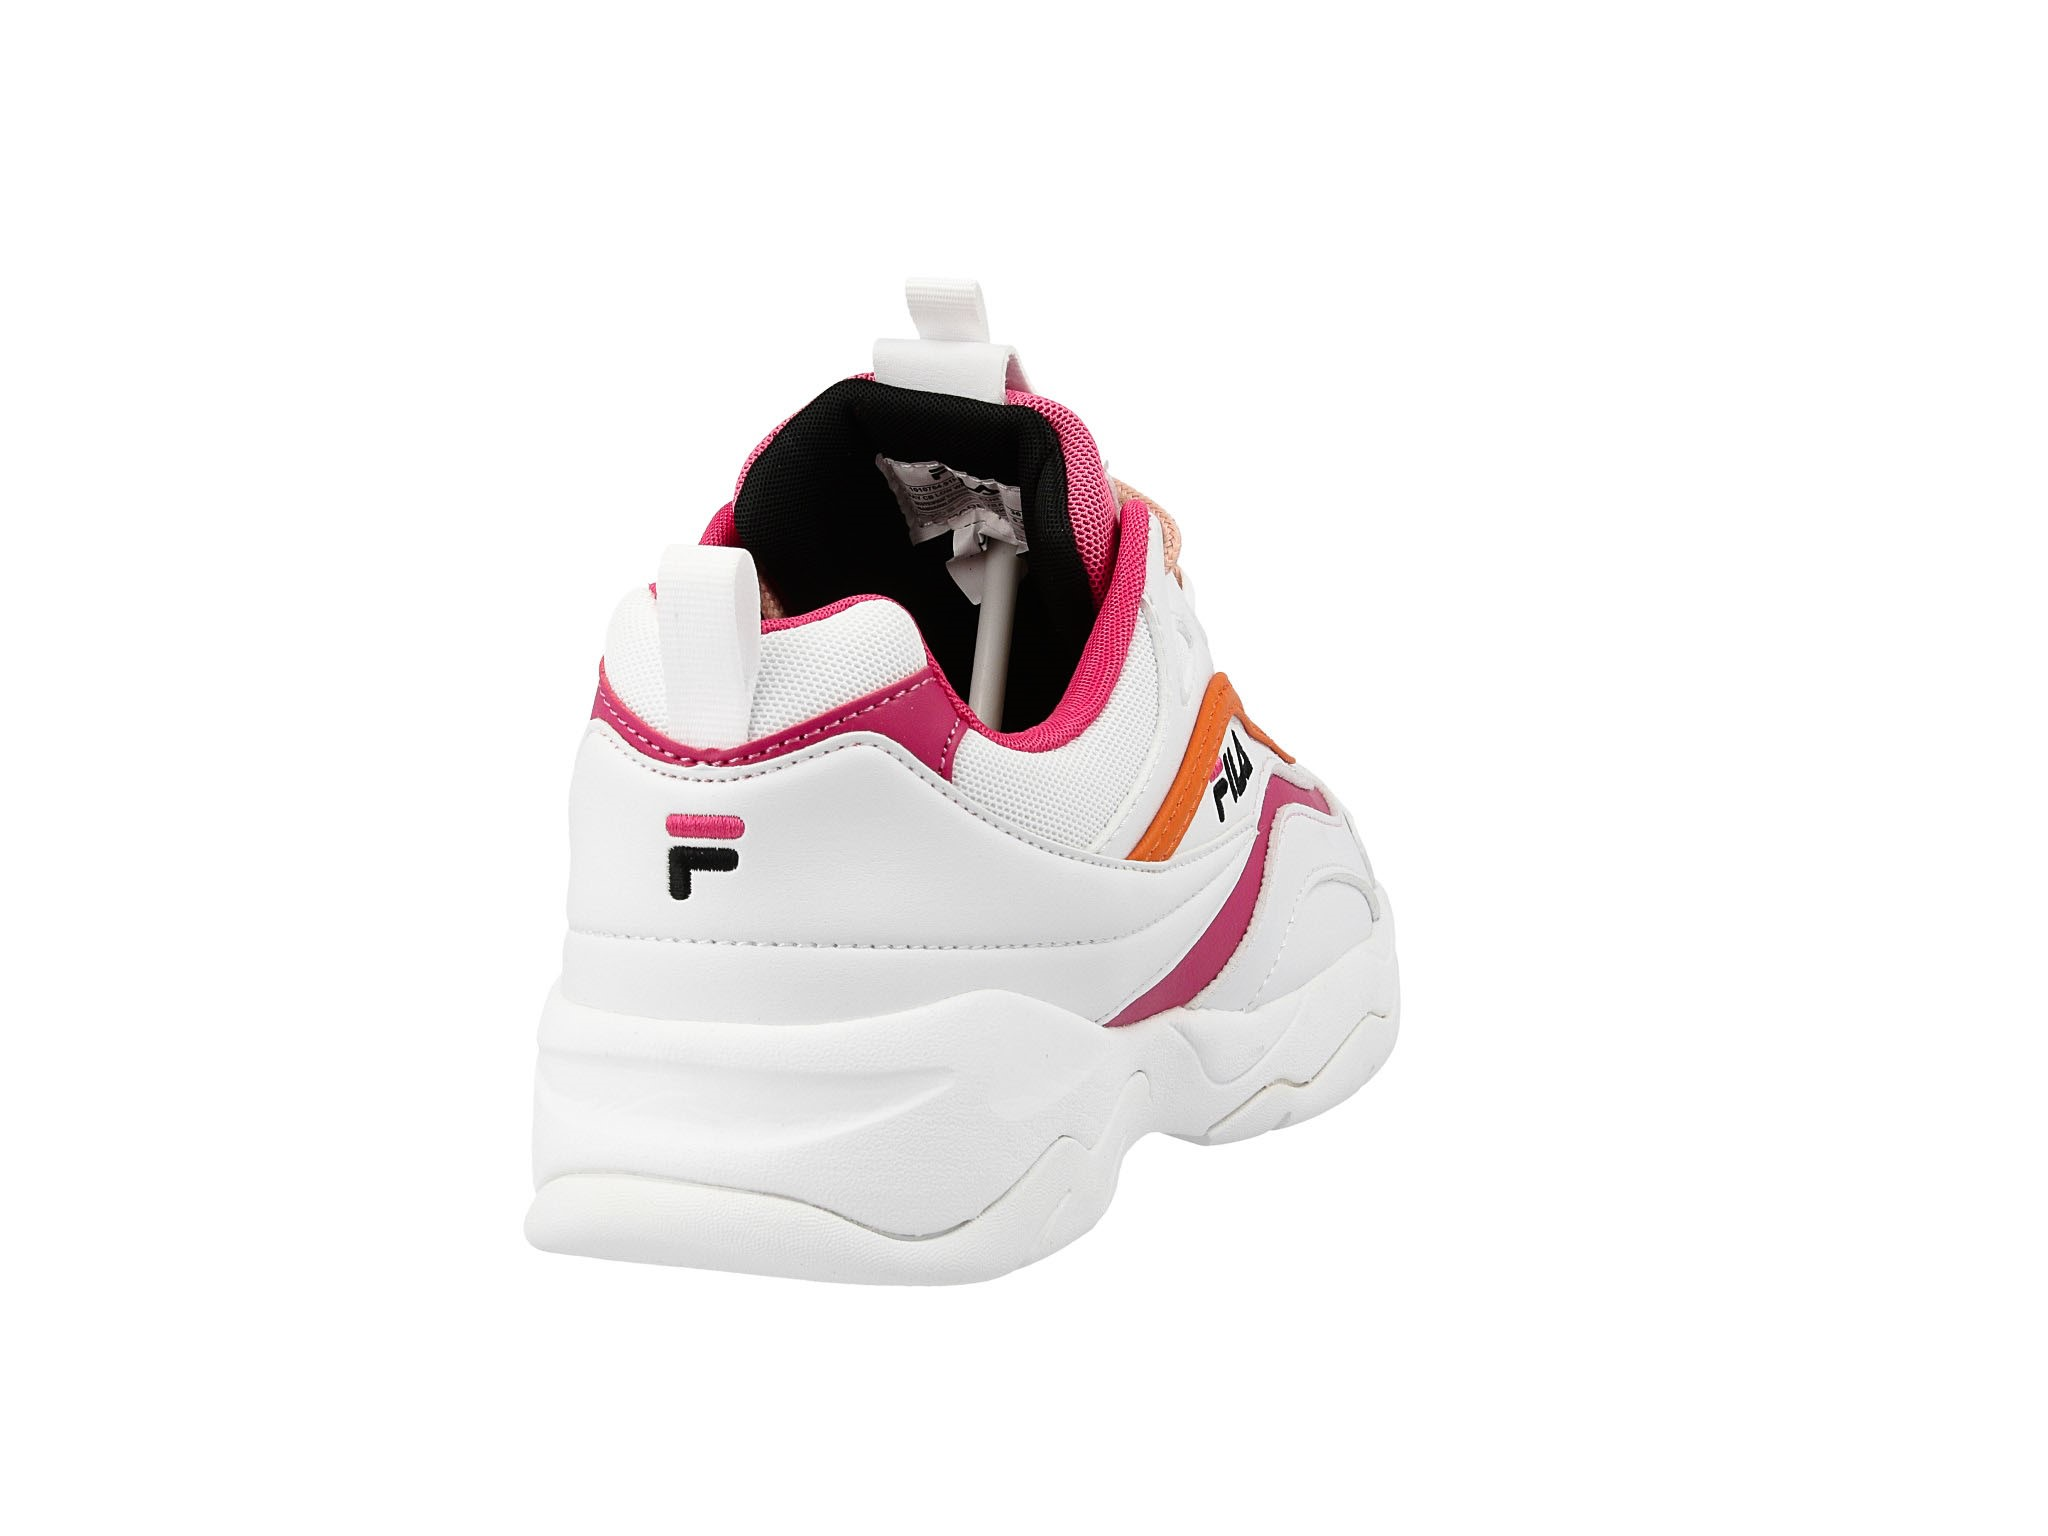 nowy Sneakersy FILA Ray Cb Low Wmn 1010764.91H WhitePink